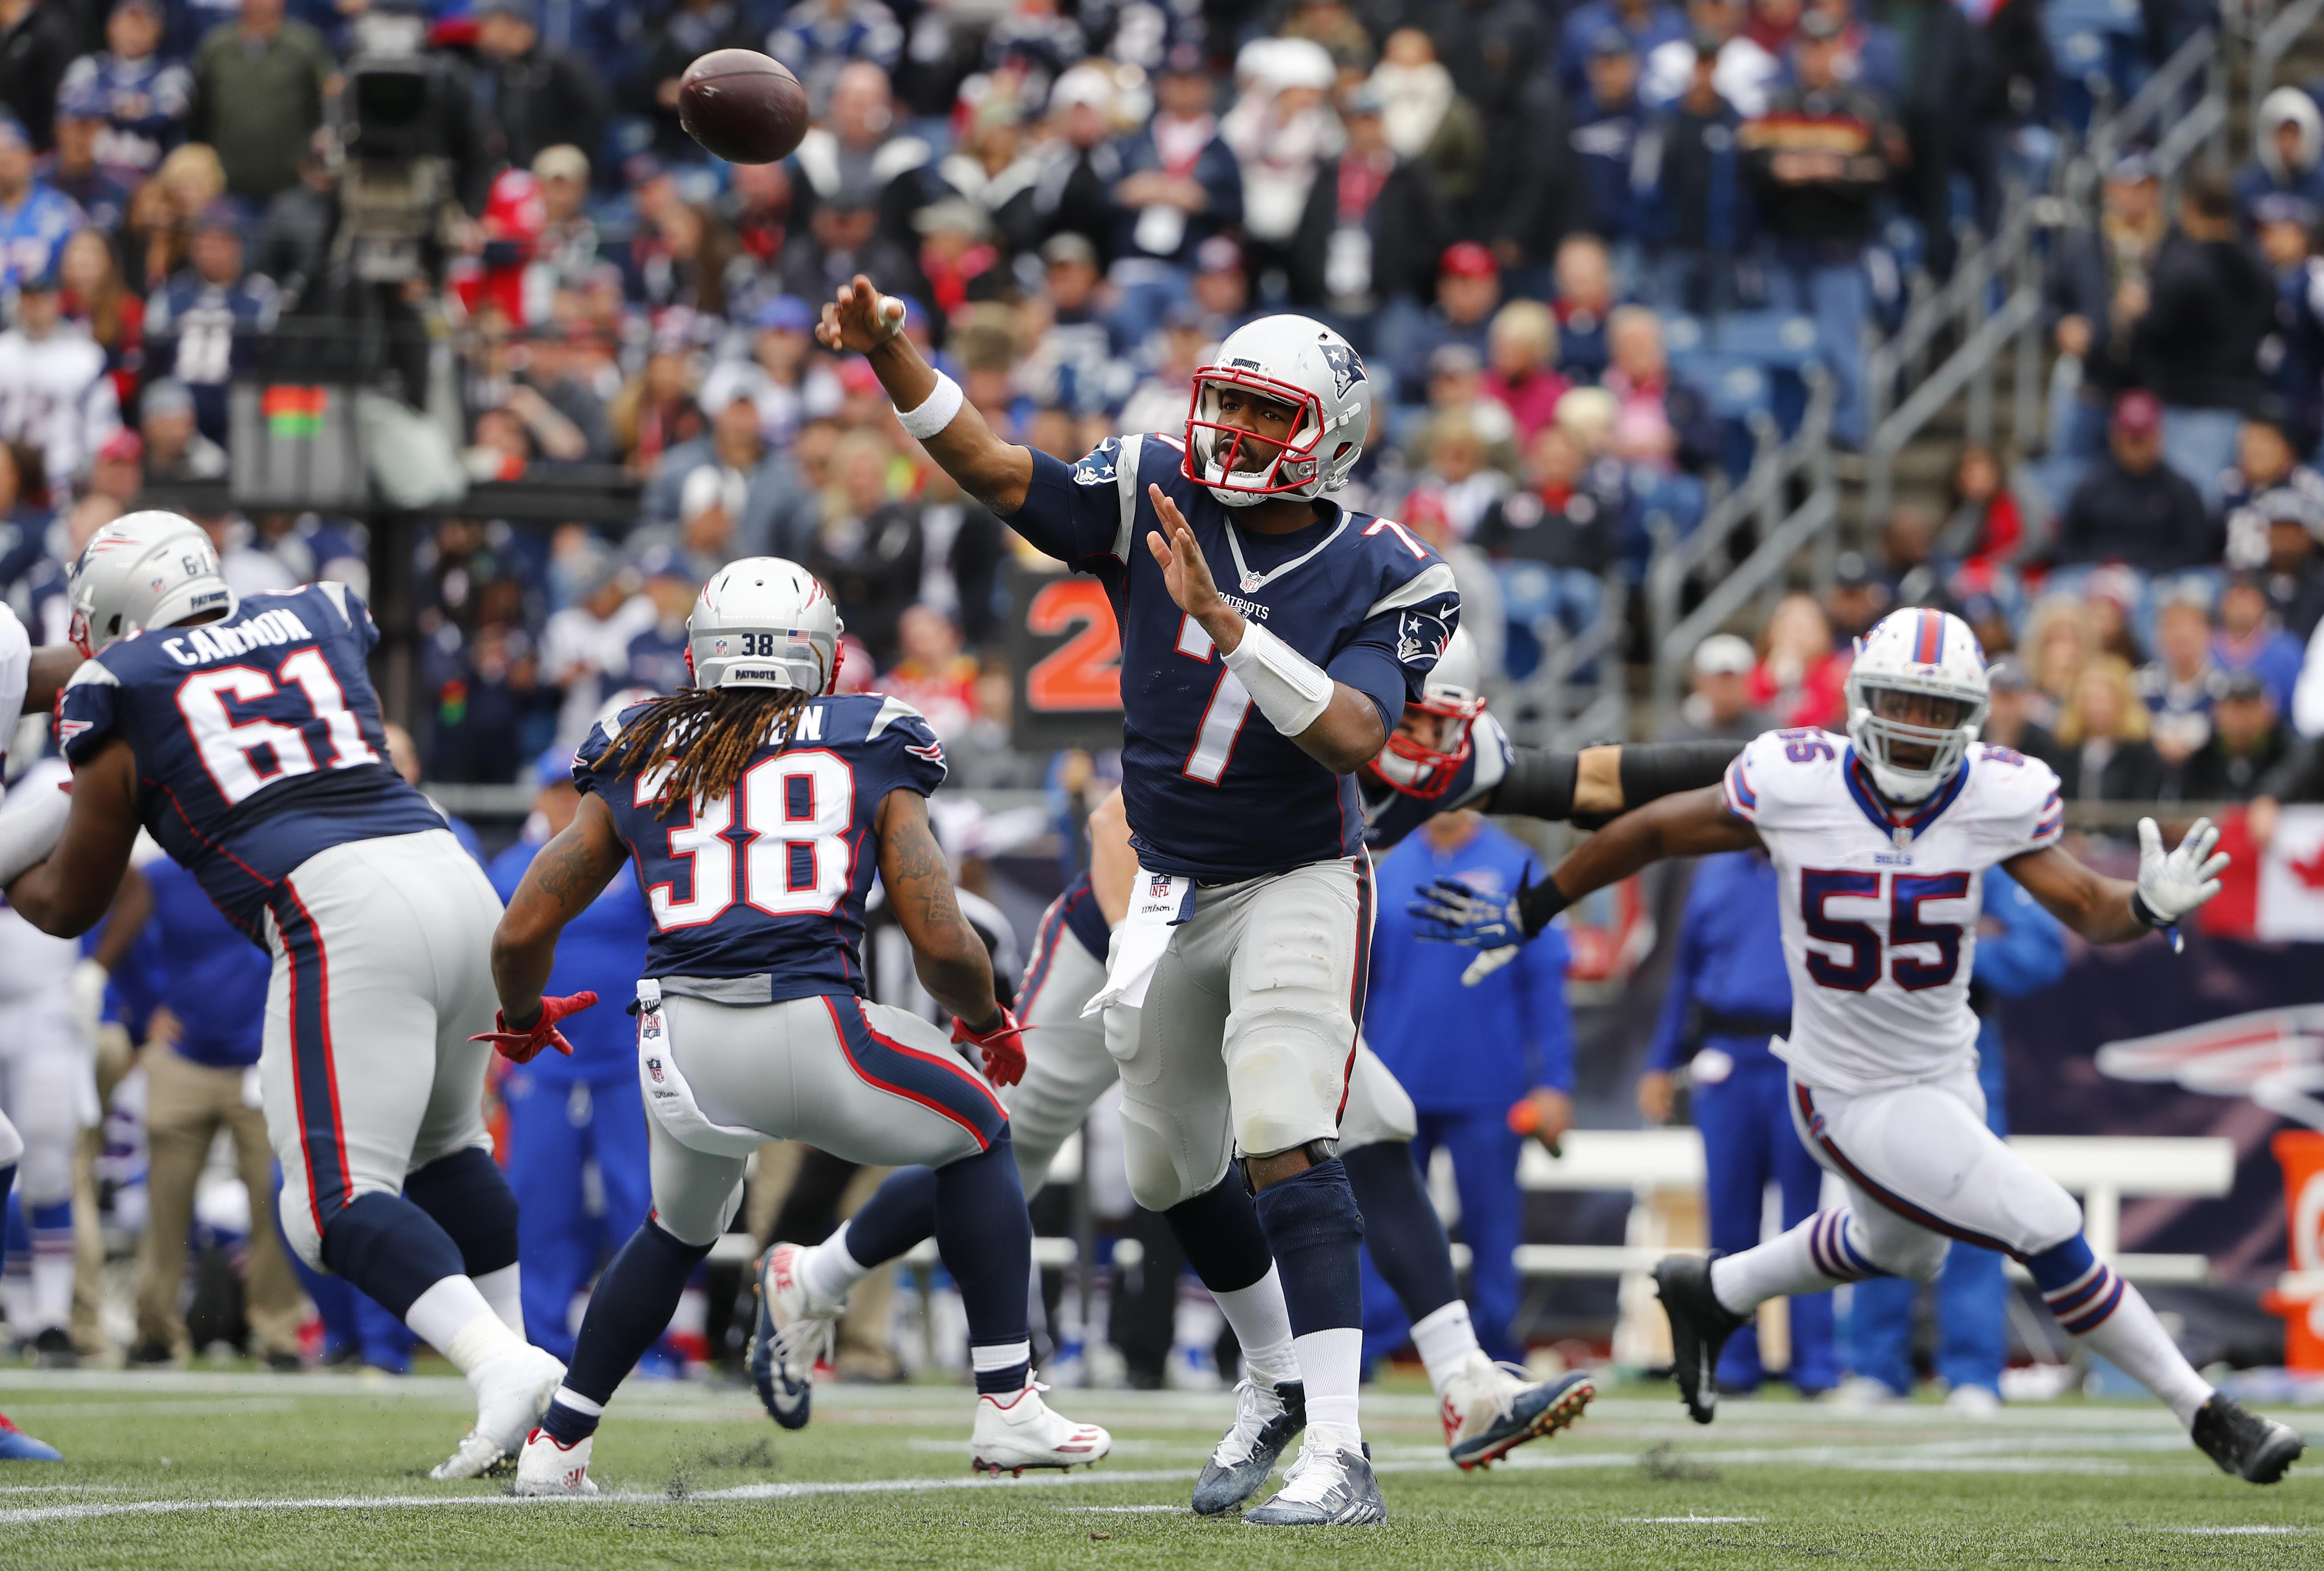 9586291-nfl-buffalo-bills-at-new-england-patriots